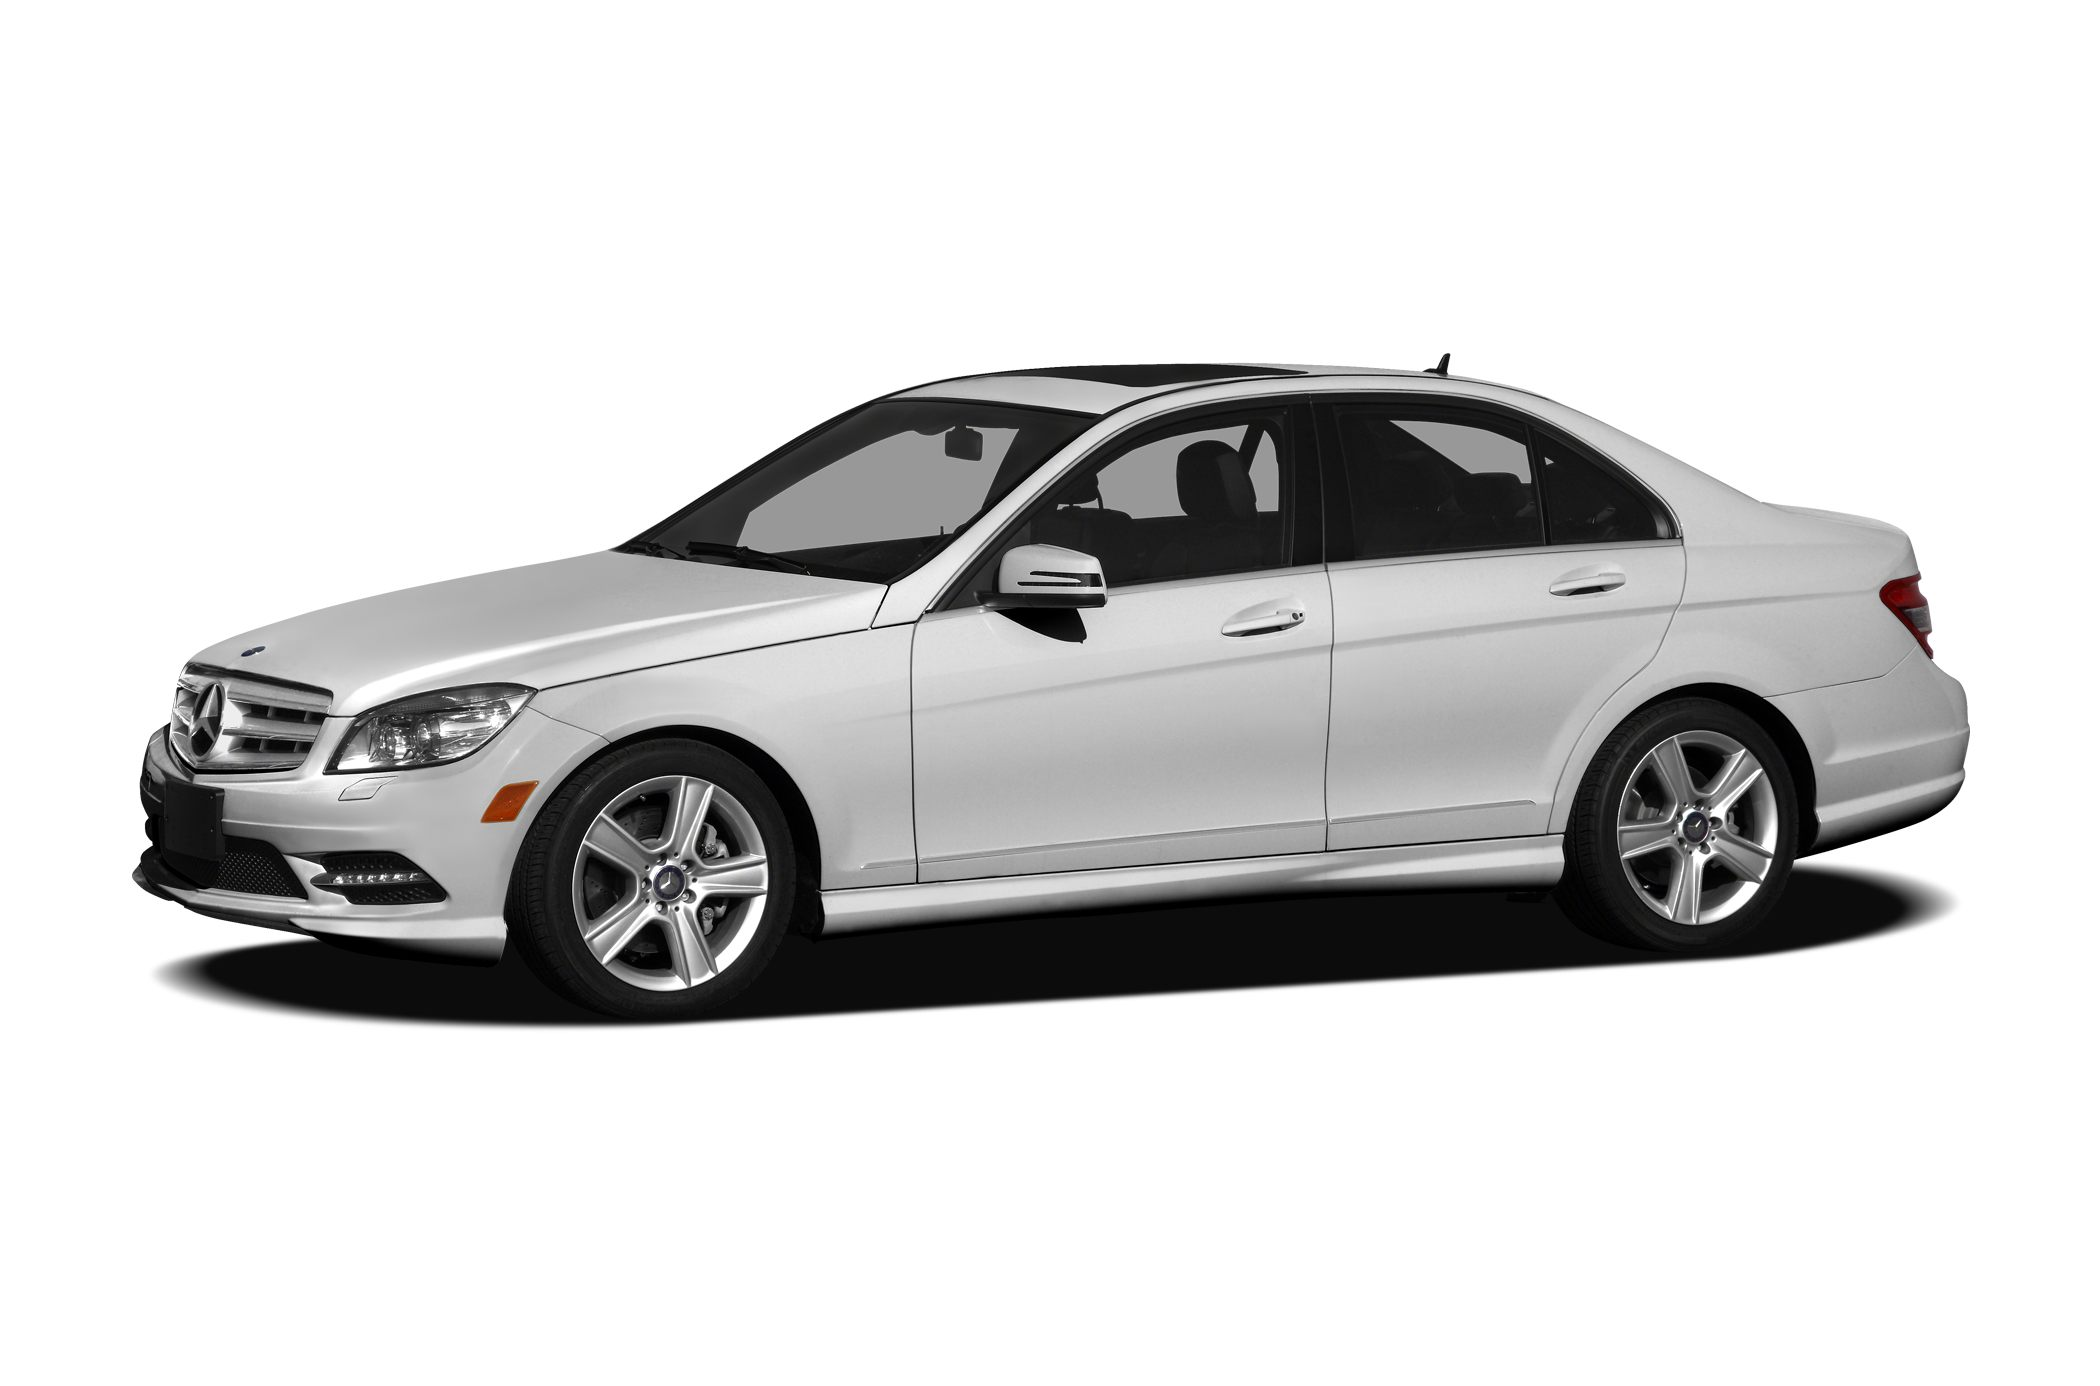 2011 Mercedes-Benz C-Class C300 Sedan for sale in Farmville for $20,900 with 57,480 miles